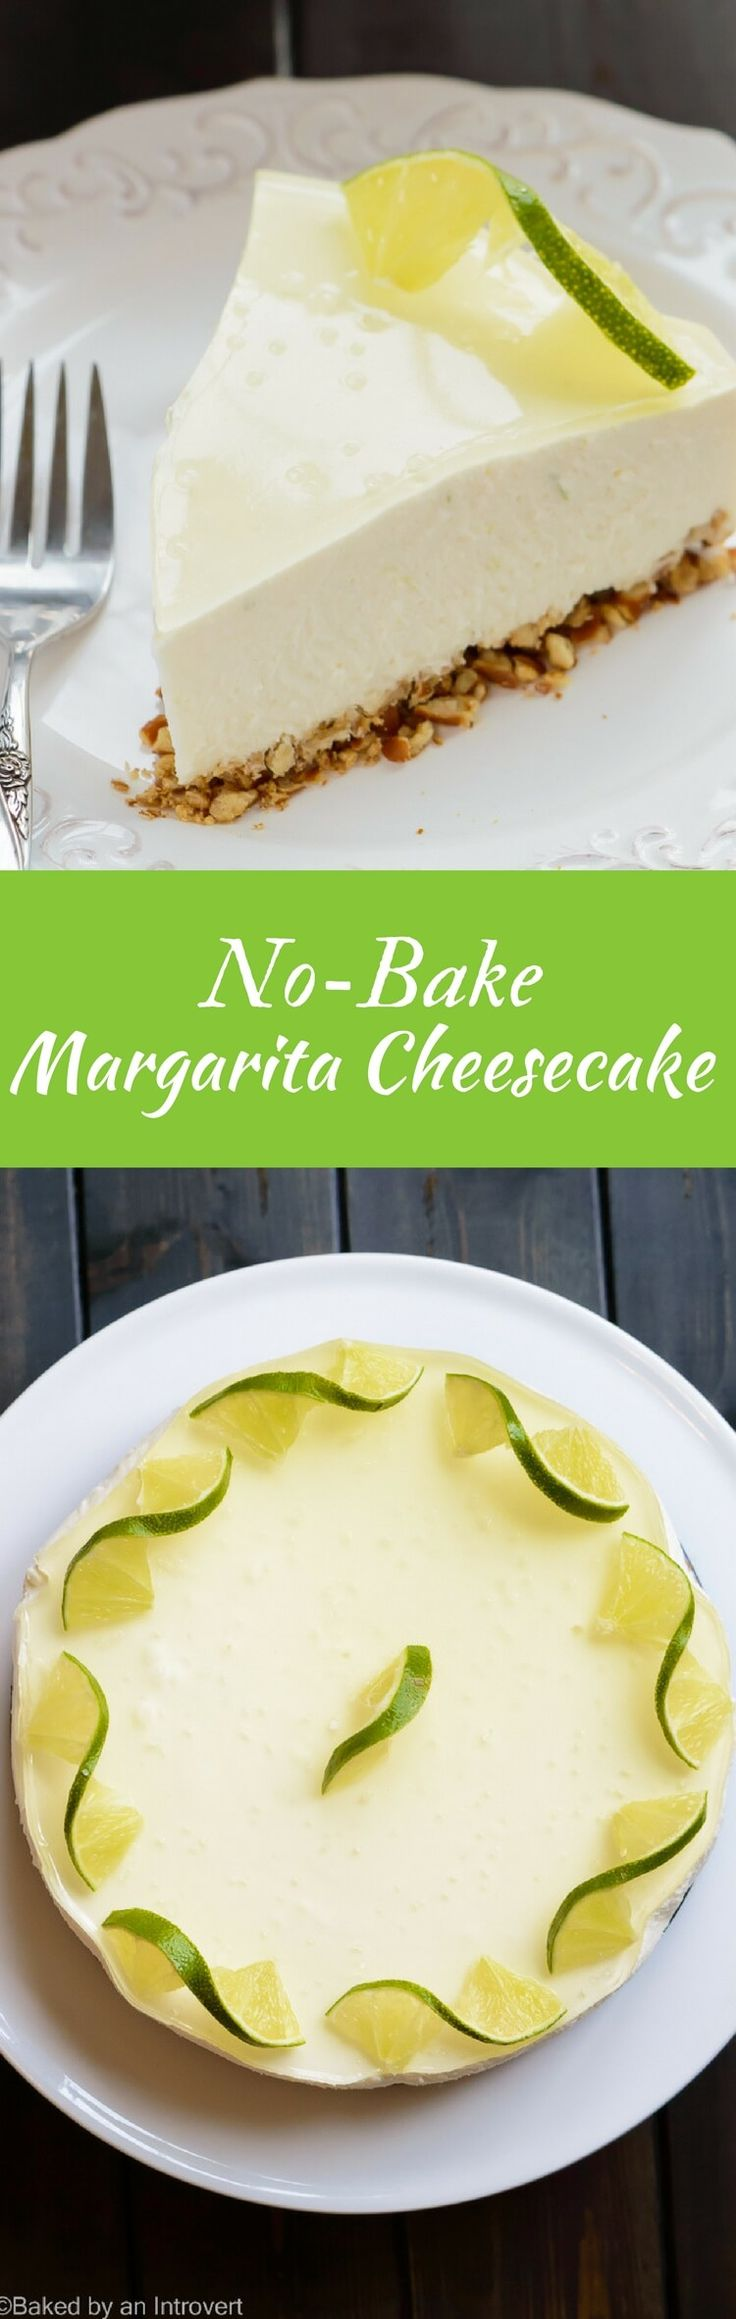 Margarita Cheesecake | No Bake | Dessert | via @introvertbaker